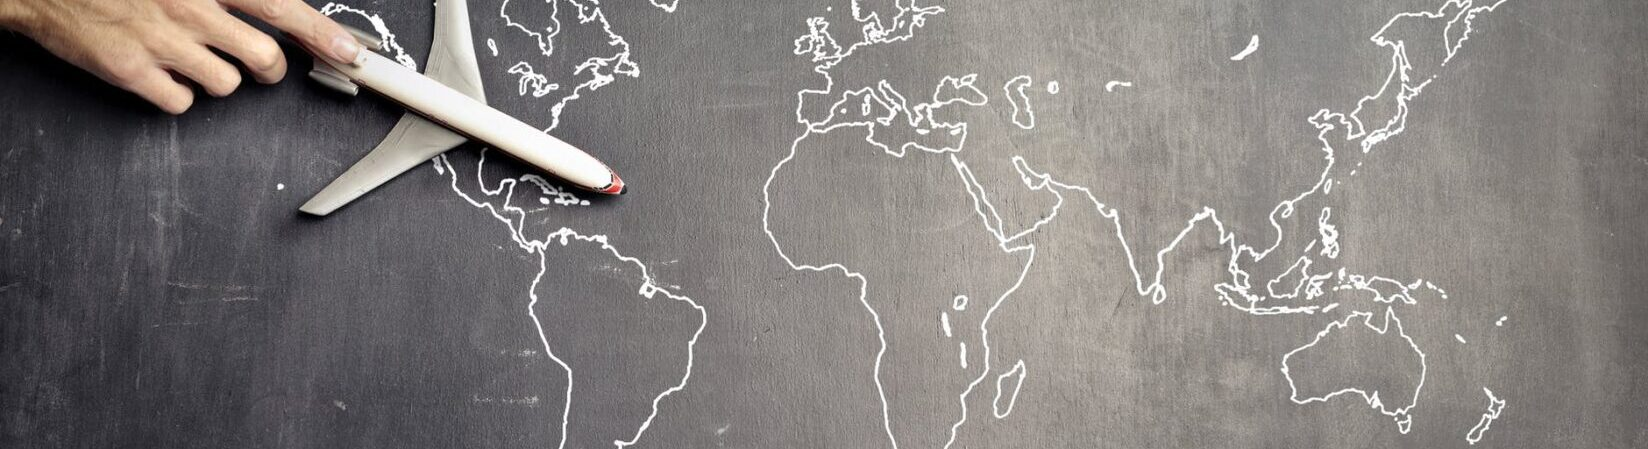 miniature airplane and hand of person over drawn map